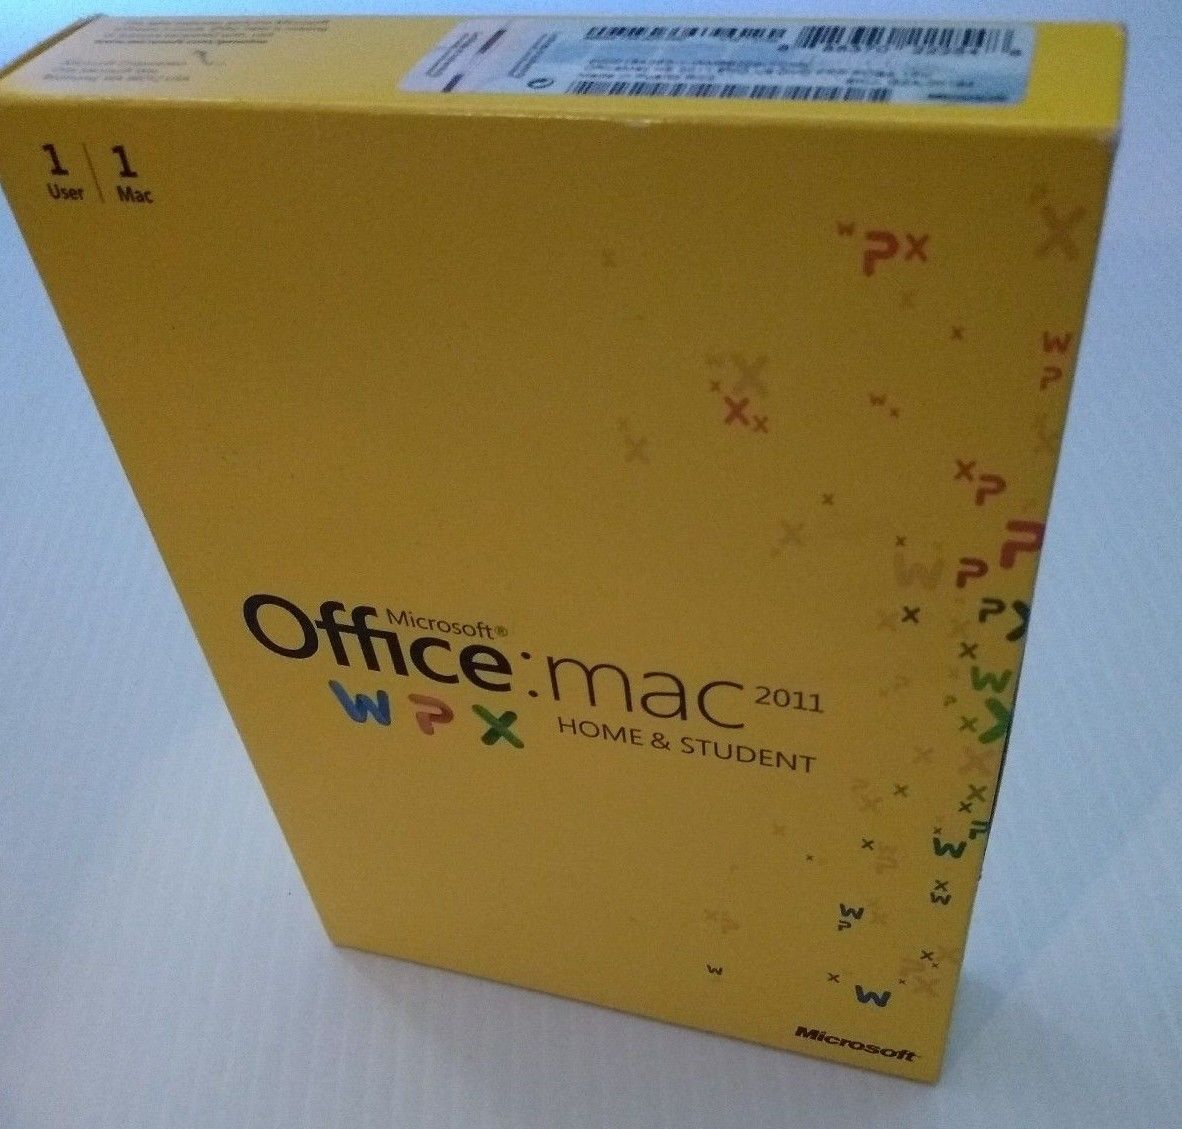 Microsoft Office MAC 2011 Home & Student DVD and 12 similar items